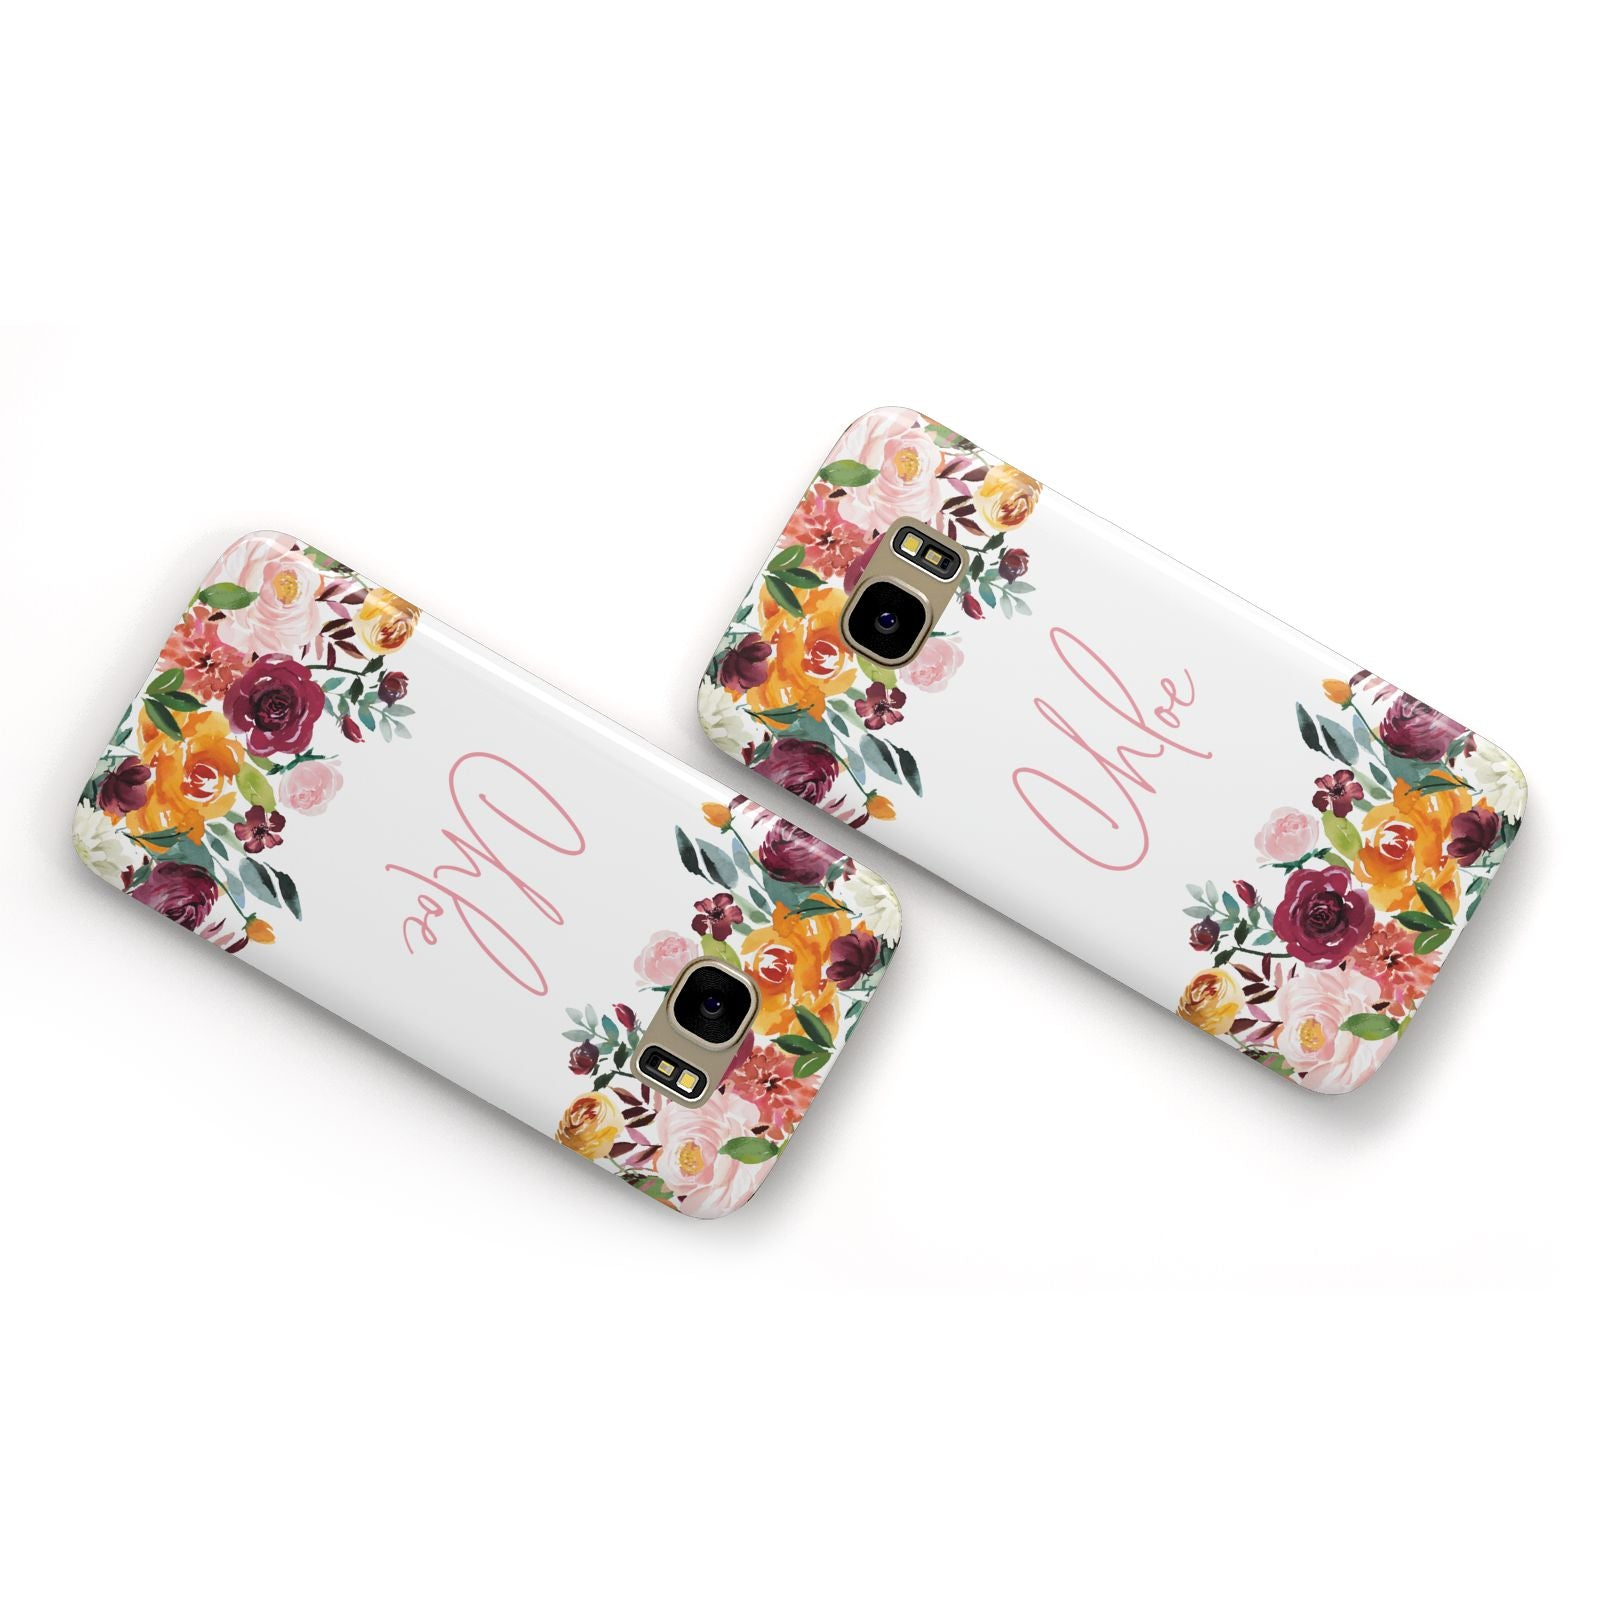 Personalised Name Transparent Flowers Samsung Galaxy Case Flat Overview